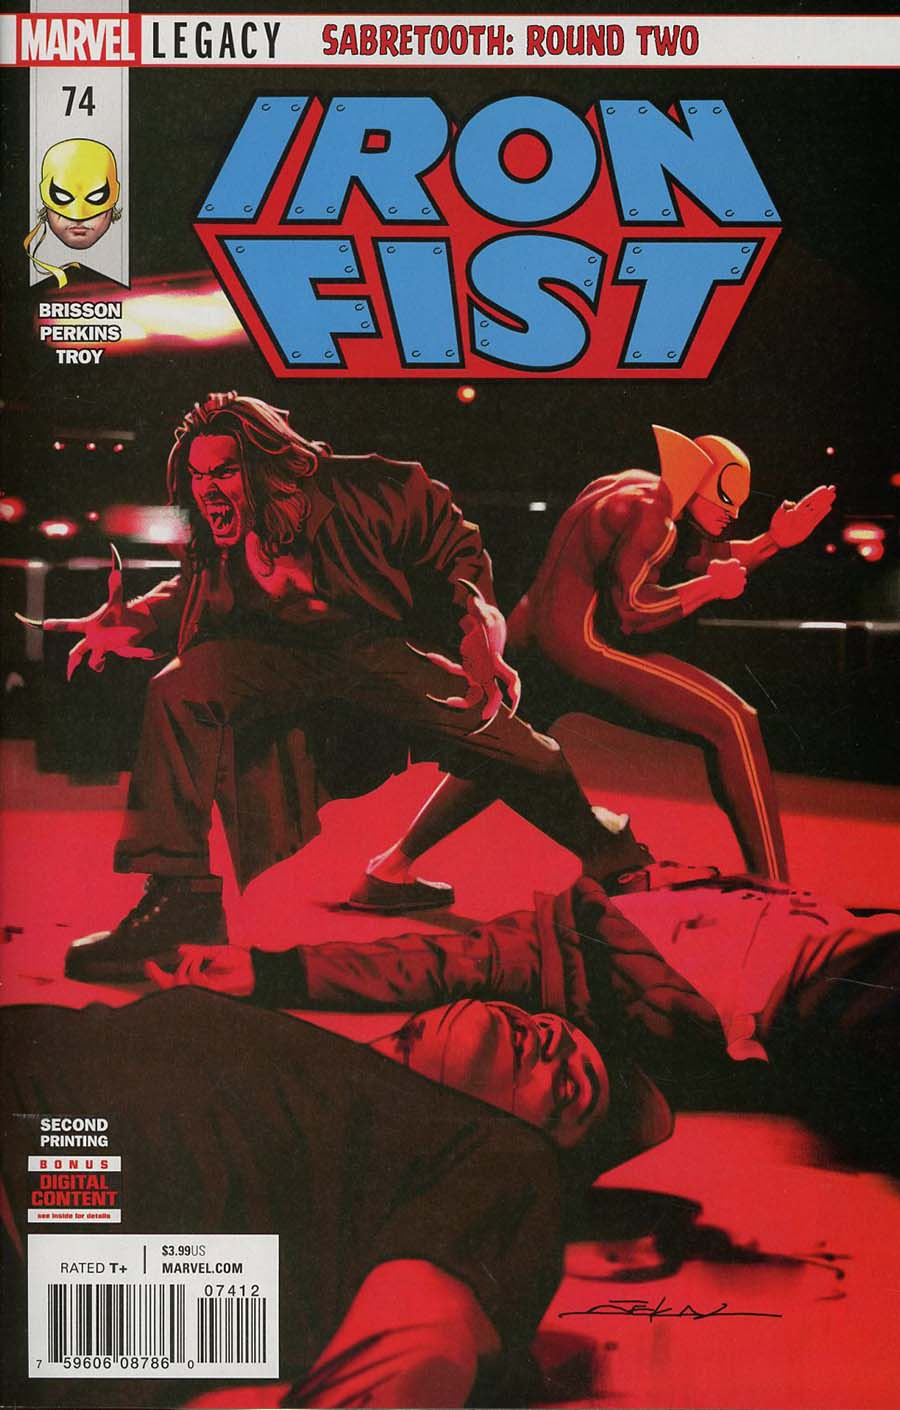 Iron Fist Vol 5 #74 Cover B 2nd Ptg Variant Jeff Dekal Cover (Marvel Legacy Tie-In)